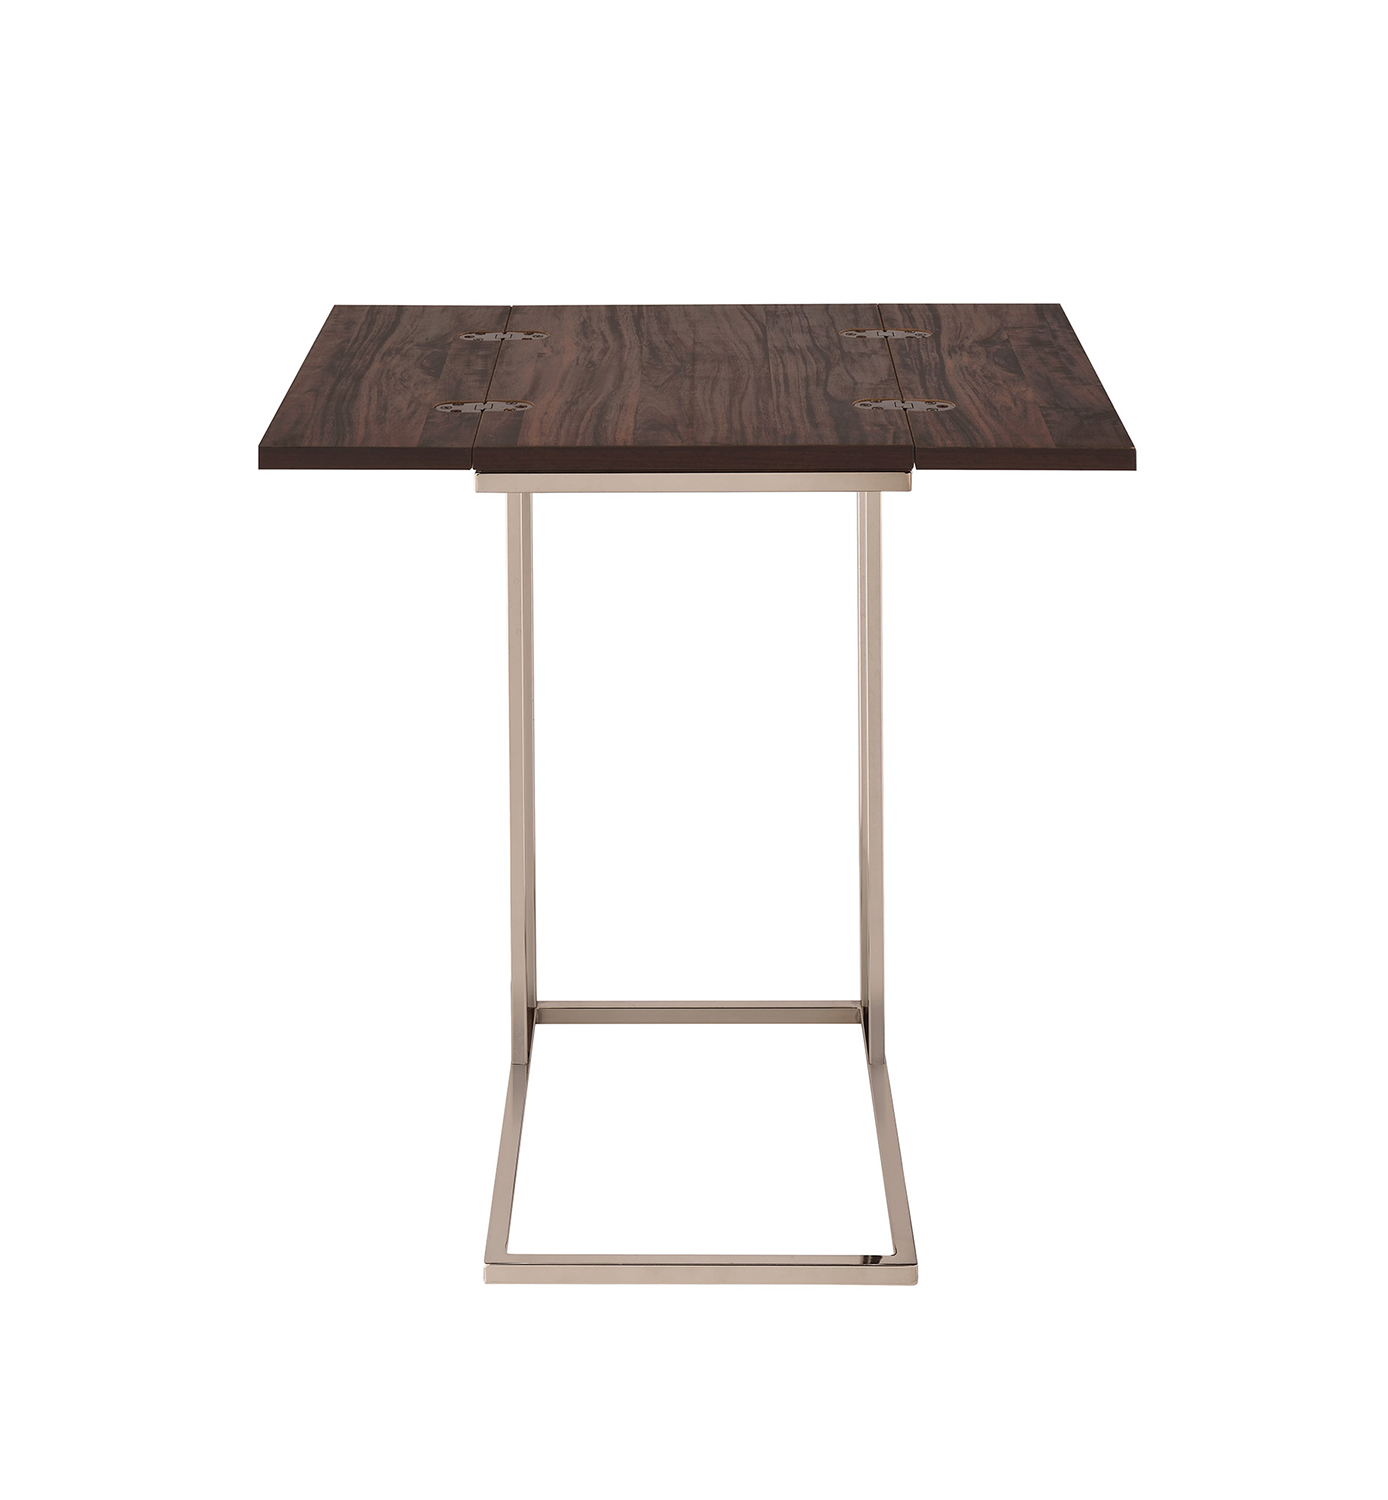 Coaster 902932 Accent Table - Chestnut/Chocolate Chrome